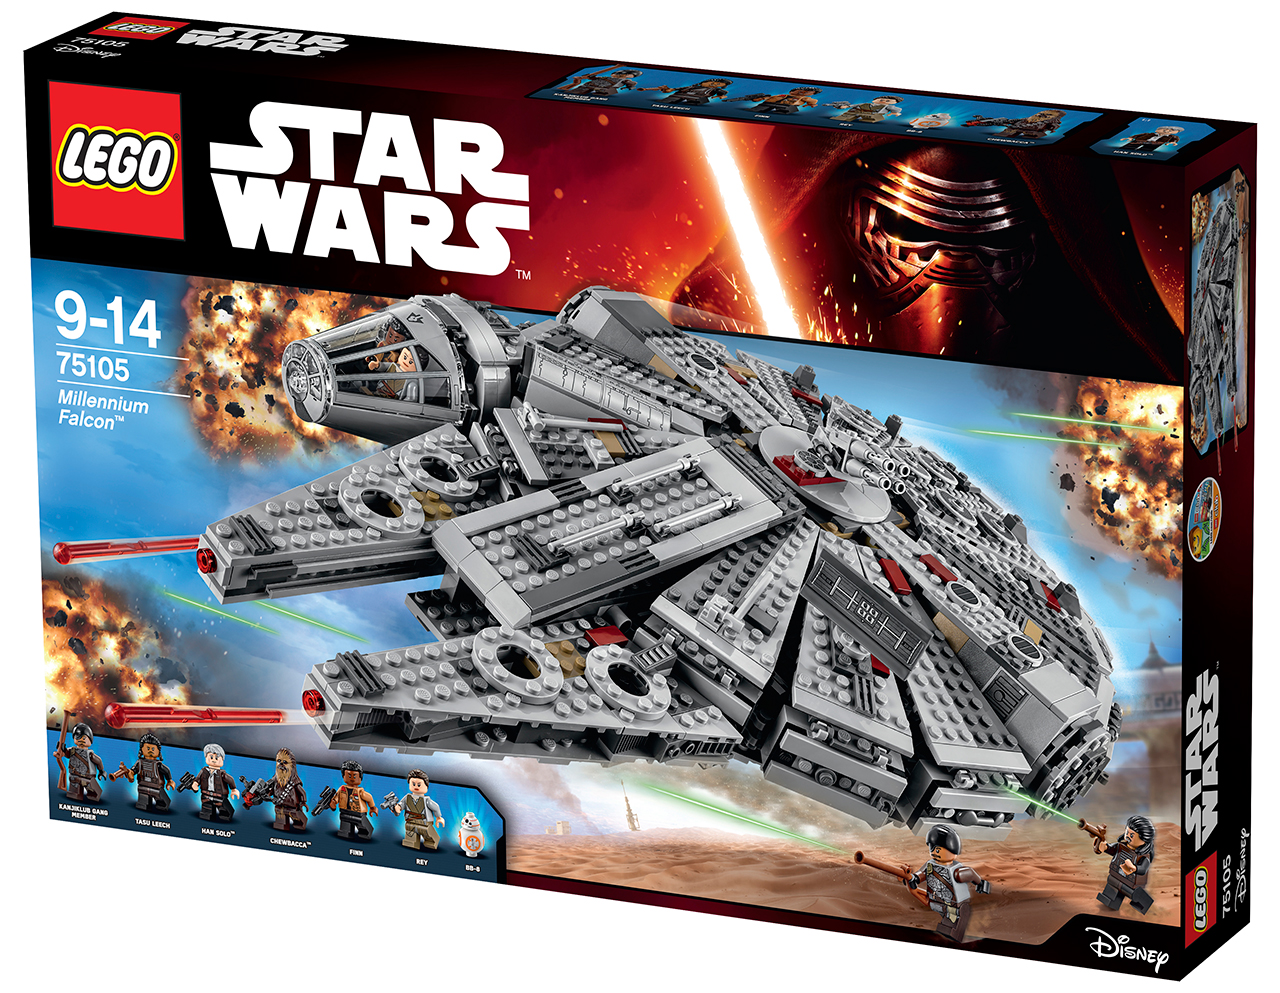 The Blot Says Star Wars The Force Awakens Lego Sets